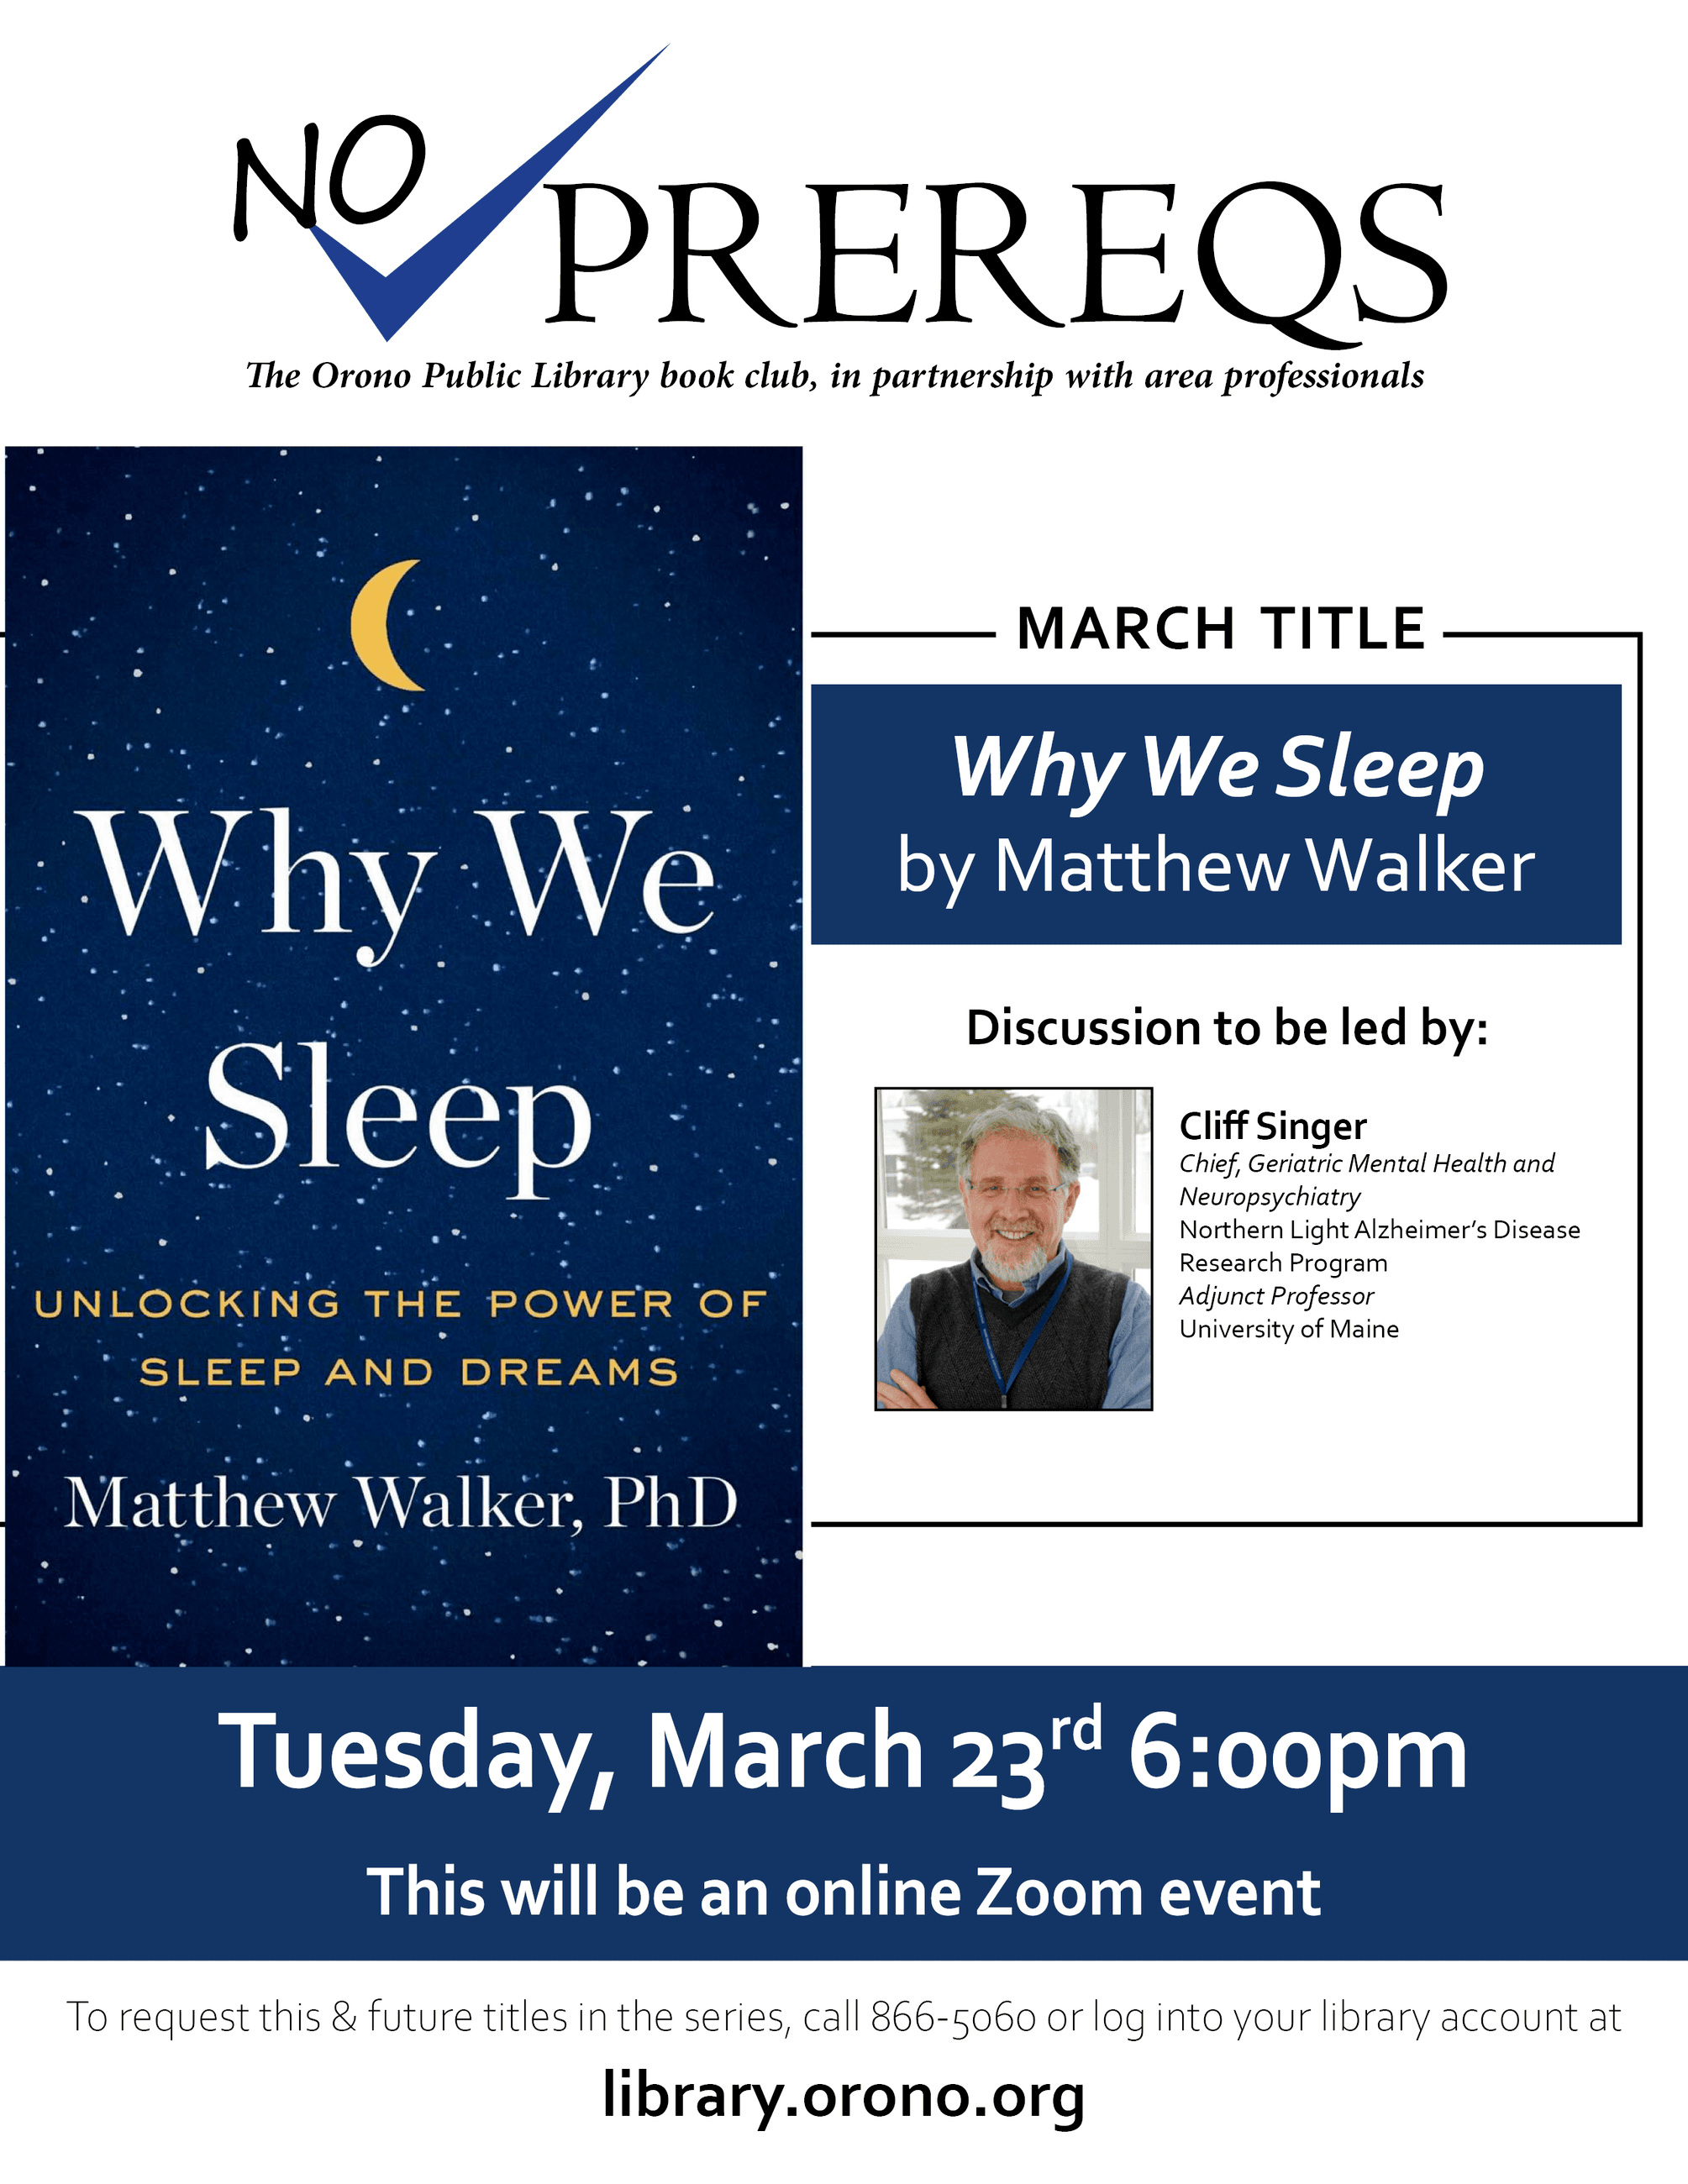 why we sleep noprereqs March 23rd